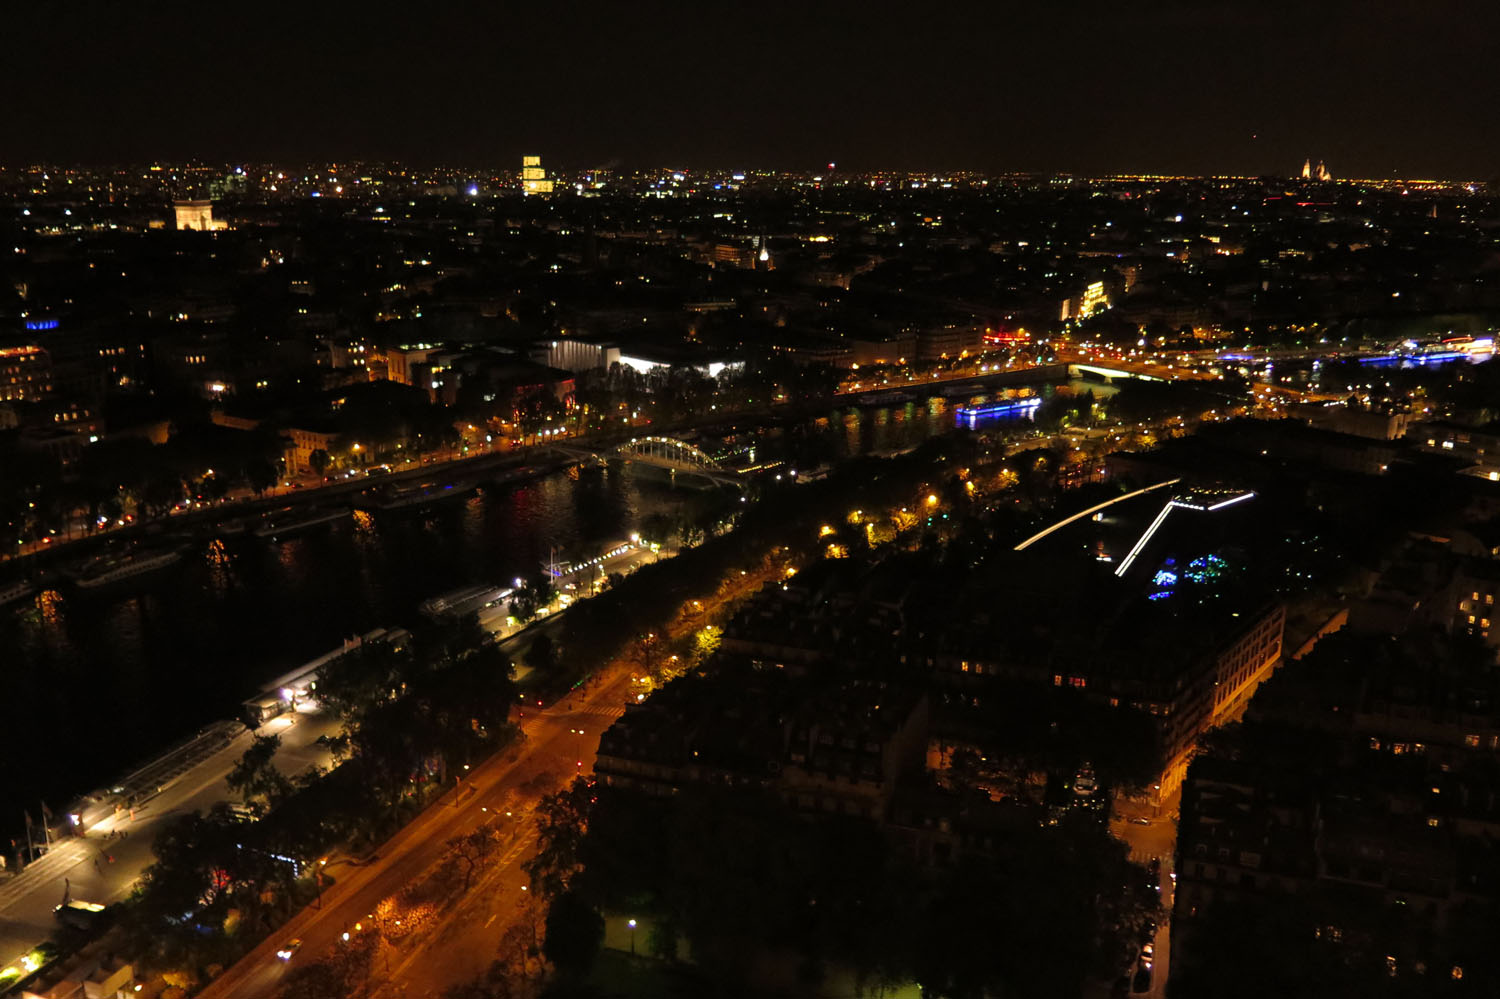 France-Paris-Eiffel-Tower-View-From-Night